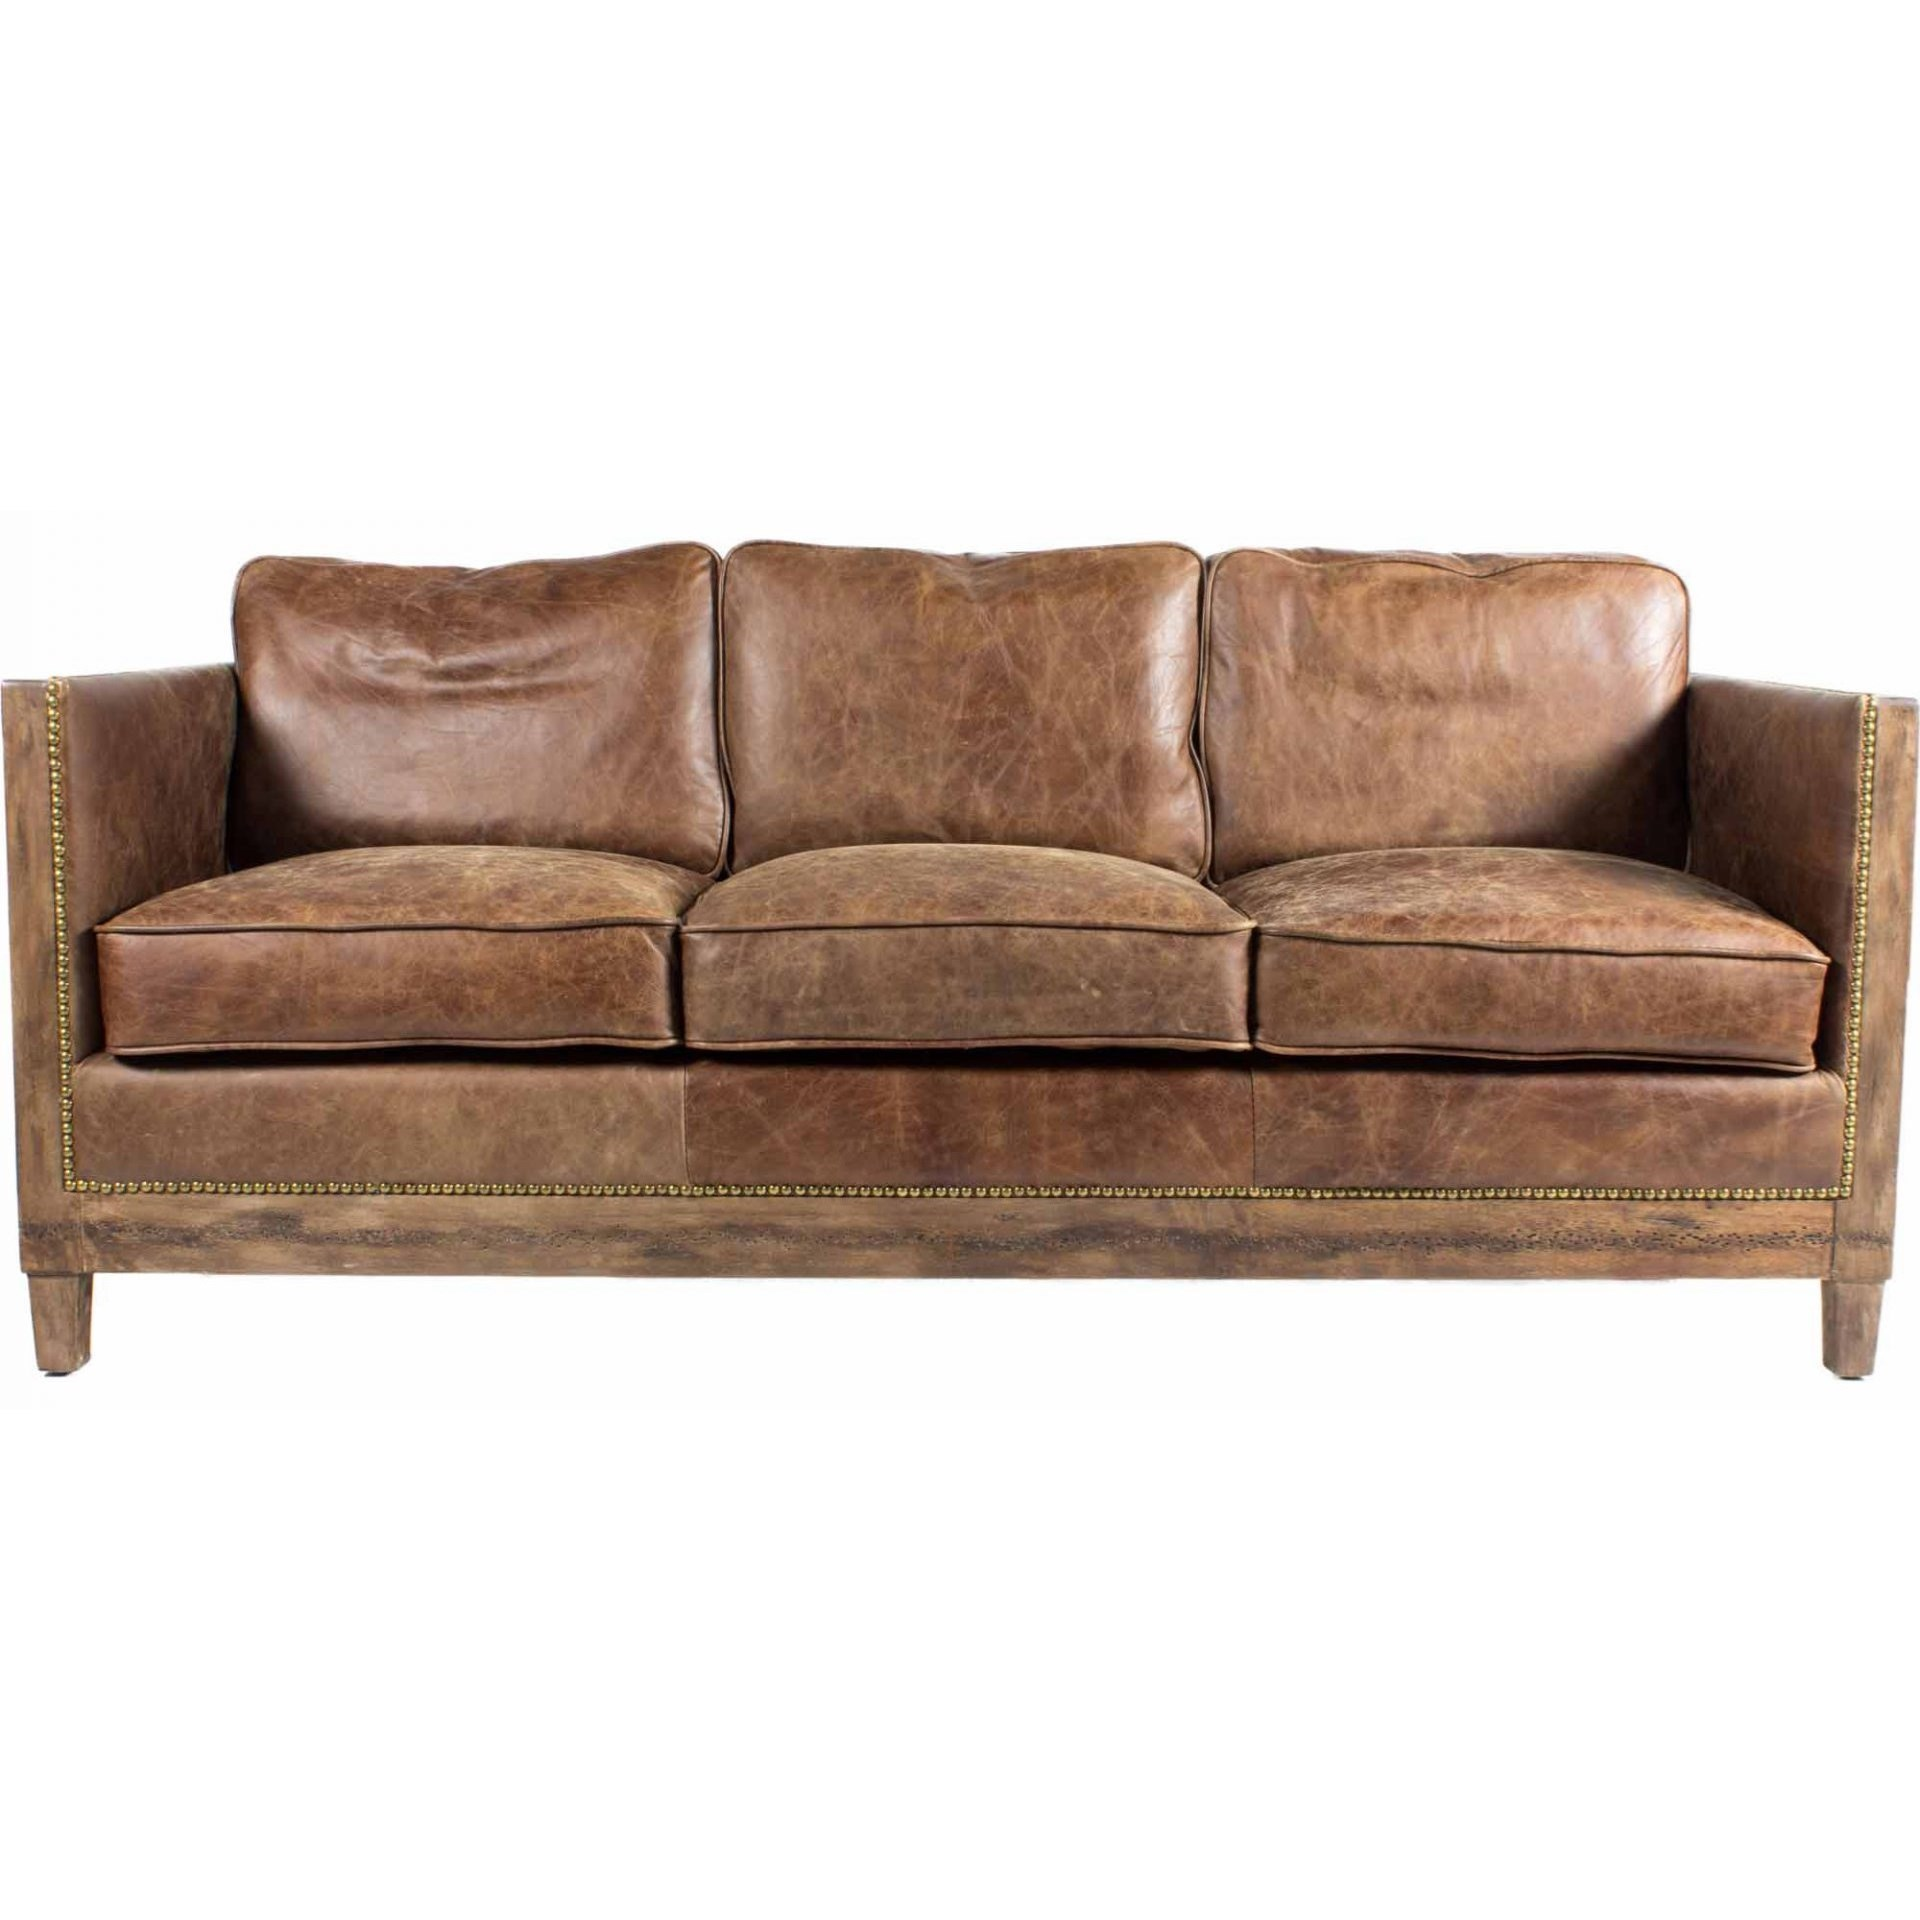 Leather Furniture Traveler Collection: Moe's Home Collection Darlington Leather Sofa With Exposed